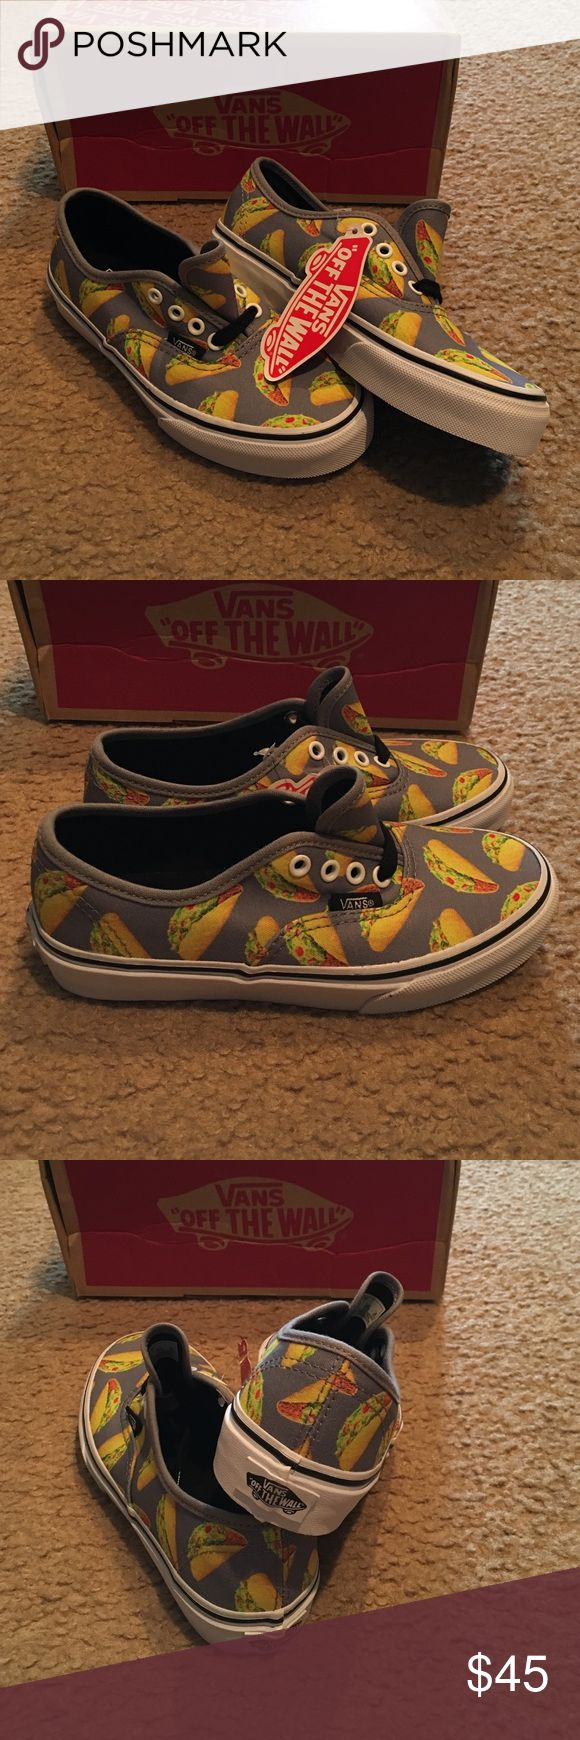 Vans Late Night frost/gray Taco sneakers Vans Kids Authentic Late Night shoe. Boys' low profile shoe. Taco print. Canvas uppers. Rubber waffle bottom sole. Imported. Vendor style #: N0003Y7IFC. Vans Shoes Sneakers